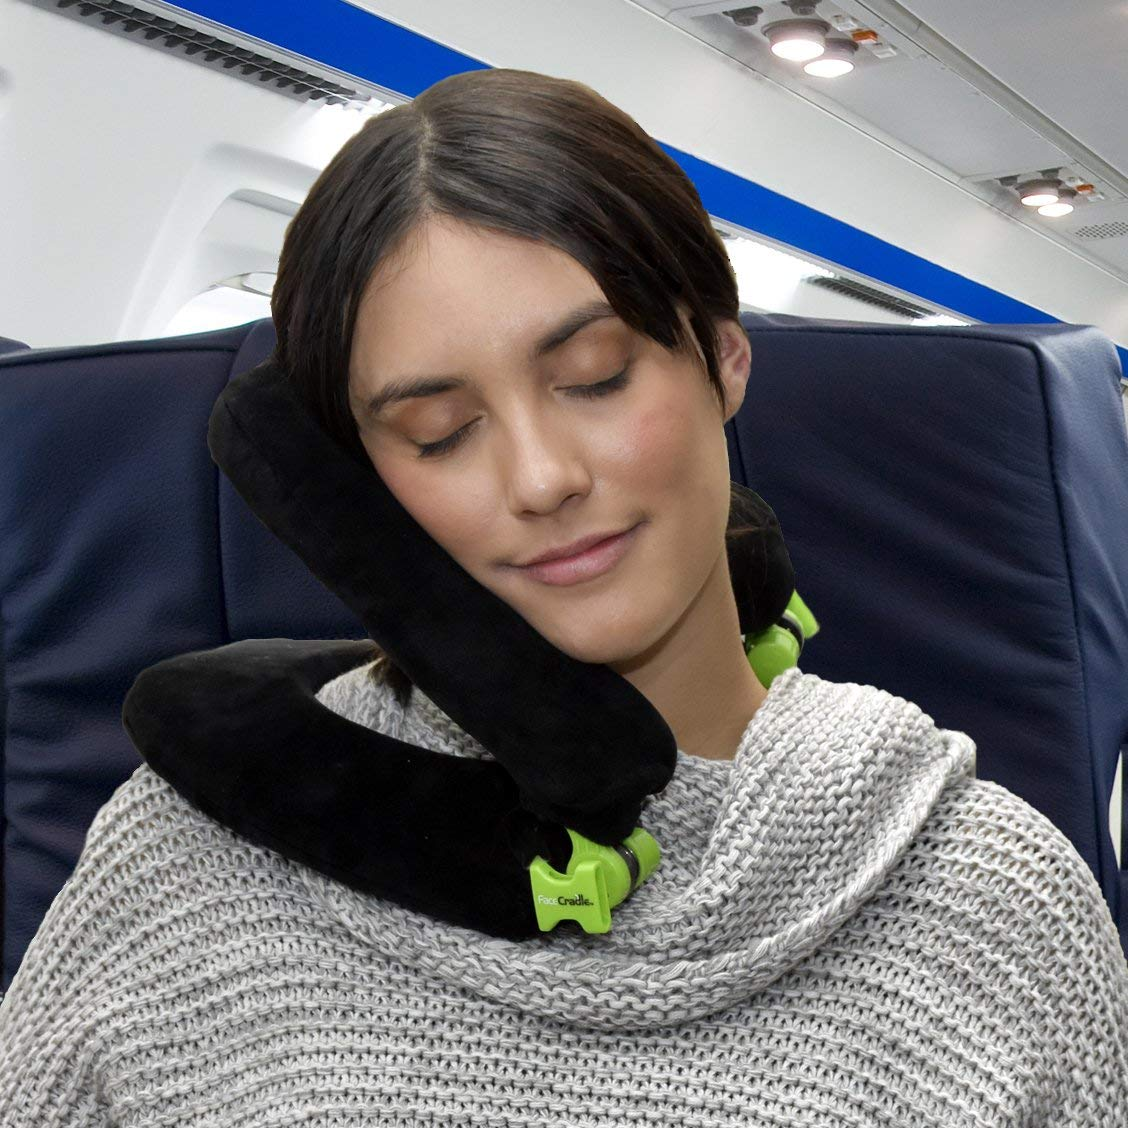 Face Cradle Wanderlust Lite Travel Pillow